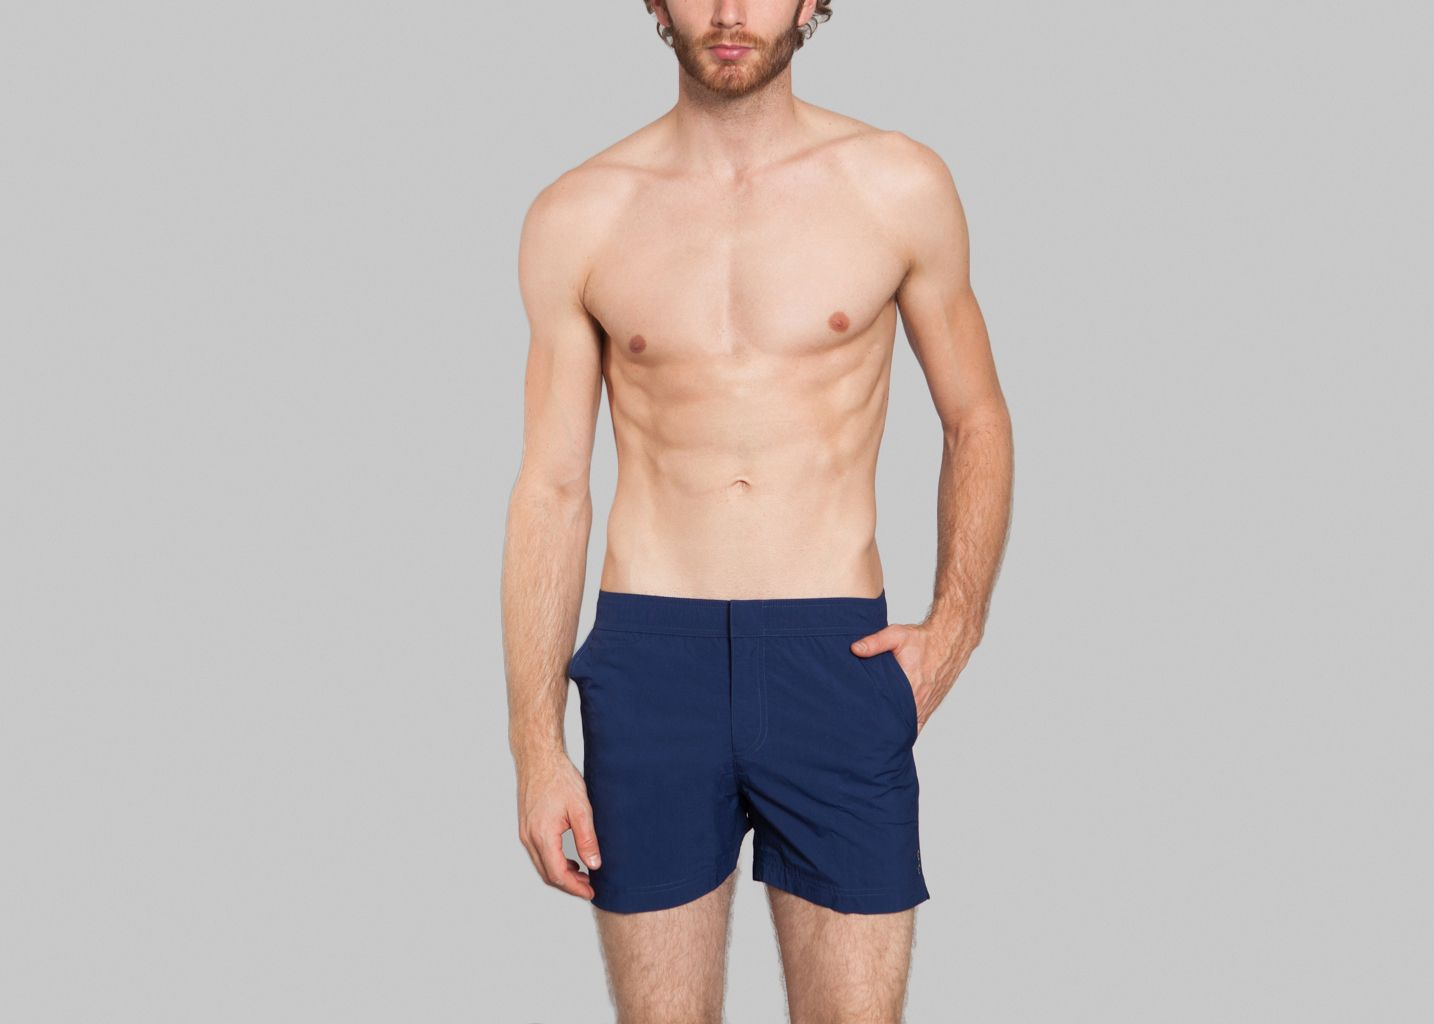 4b8c46fe8f SwimGym Shorts Navy Blue Ron Dorff | L'Exception